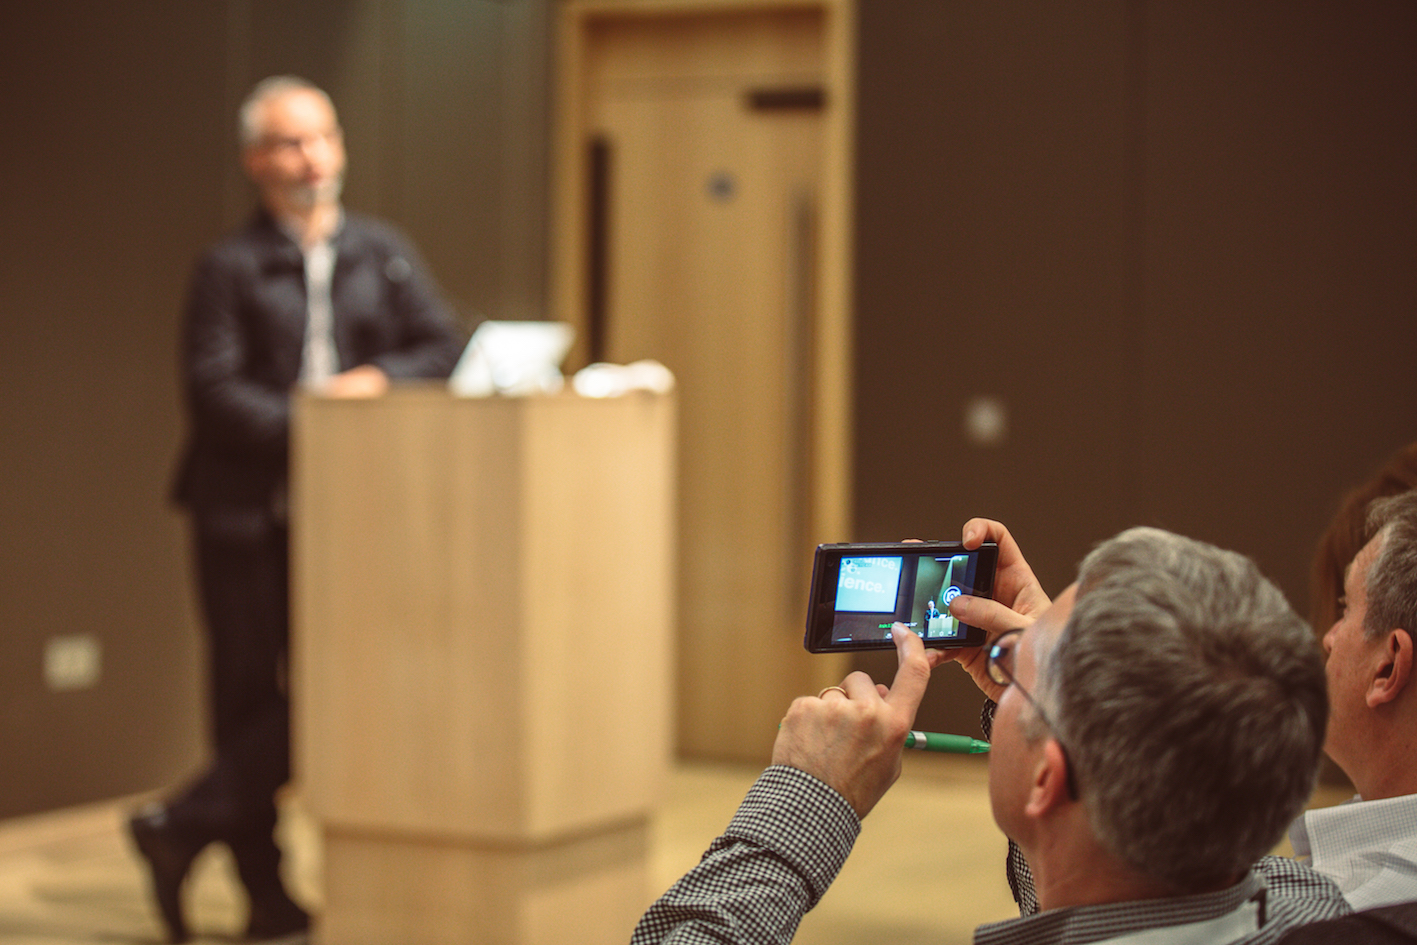 A man standing at a lectern and being photographed by another man